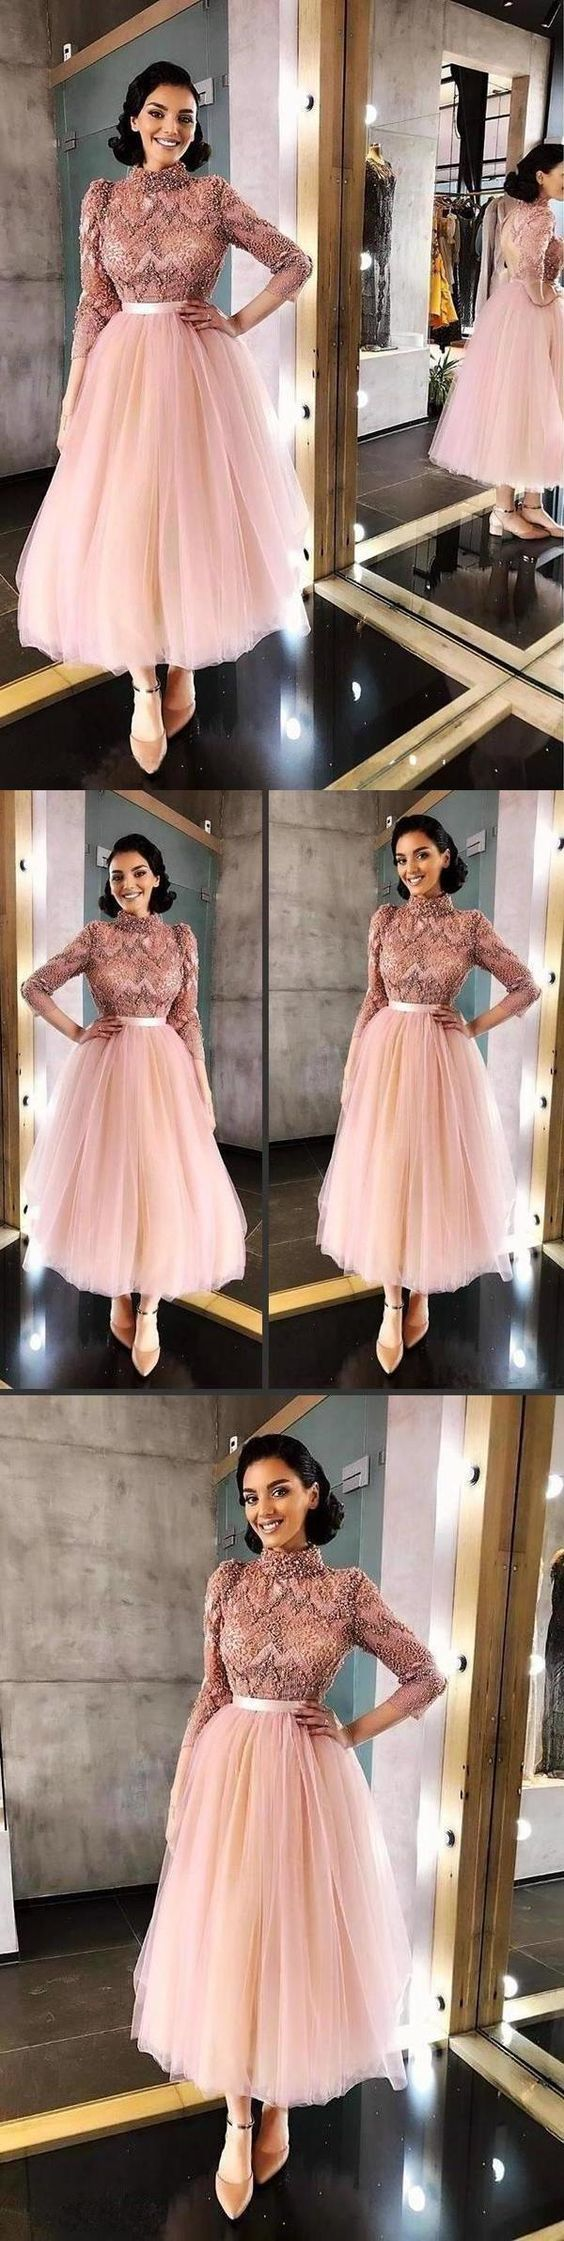 Long Sleeve Pink High Neck Ankle Length Homecoming Dresses Beads Tulle Short